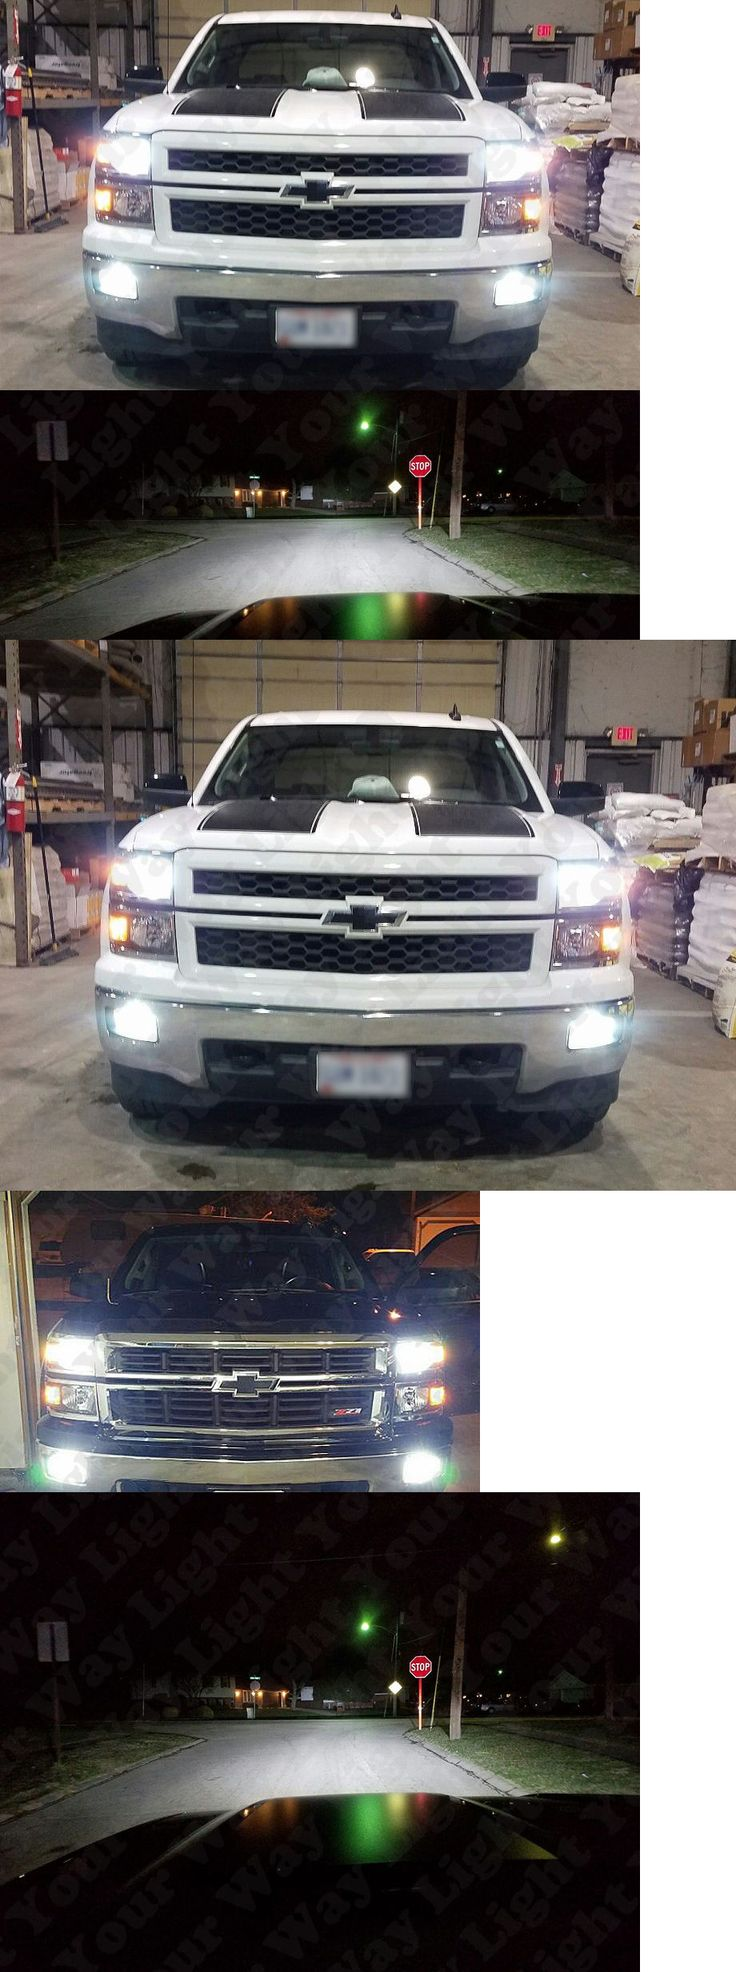 Motors Parts And Accessories: White Led H11 Low Beam Headlight + 5202 Fog Light Bulbs For 2015 2016 Silverado -> BUY IT NOW ONLY: $74.98 on eBay!